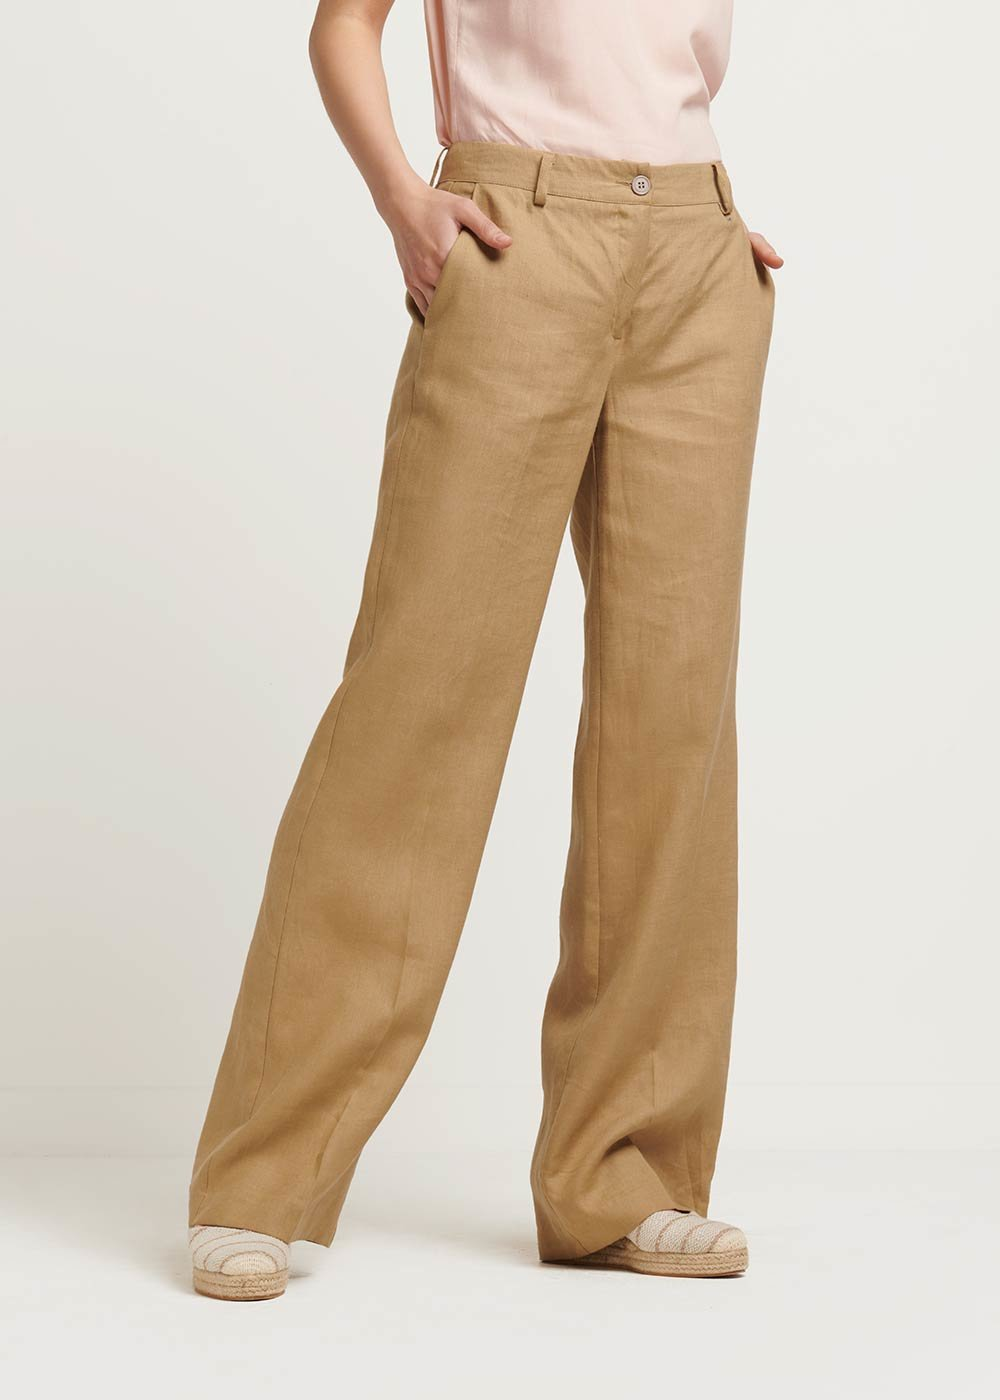 Giorgia linen trousers - Beige - Woman